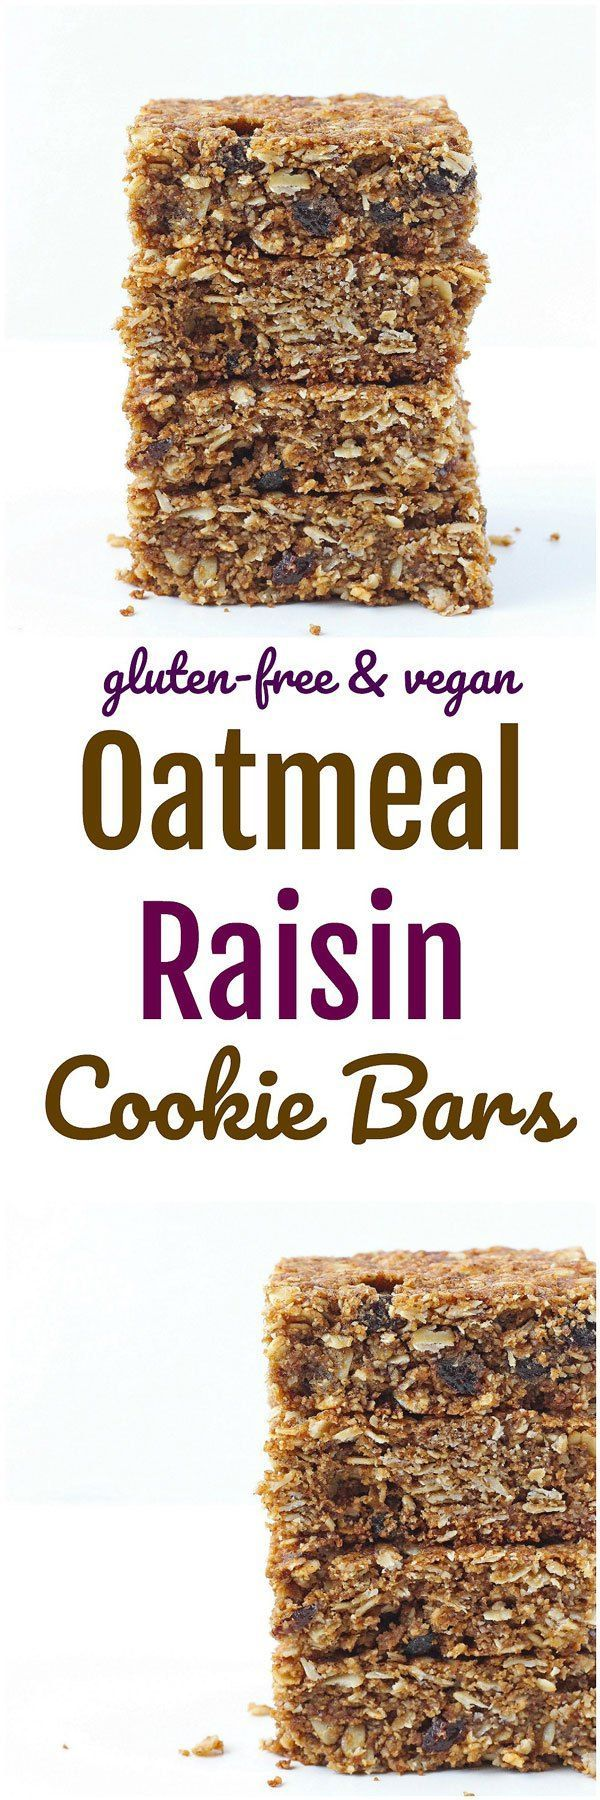 Oatmeal Raisin Cookie Bars - A cross between a cookie and a granola bar, these Oatmeal Raisin Cookie Bars are crispy on the outside yet soft in the middle – just like an oatmeal cookie! Vegan & gluten-free